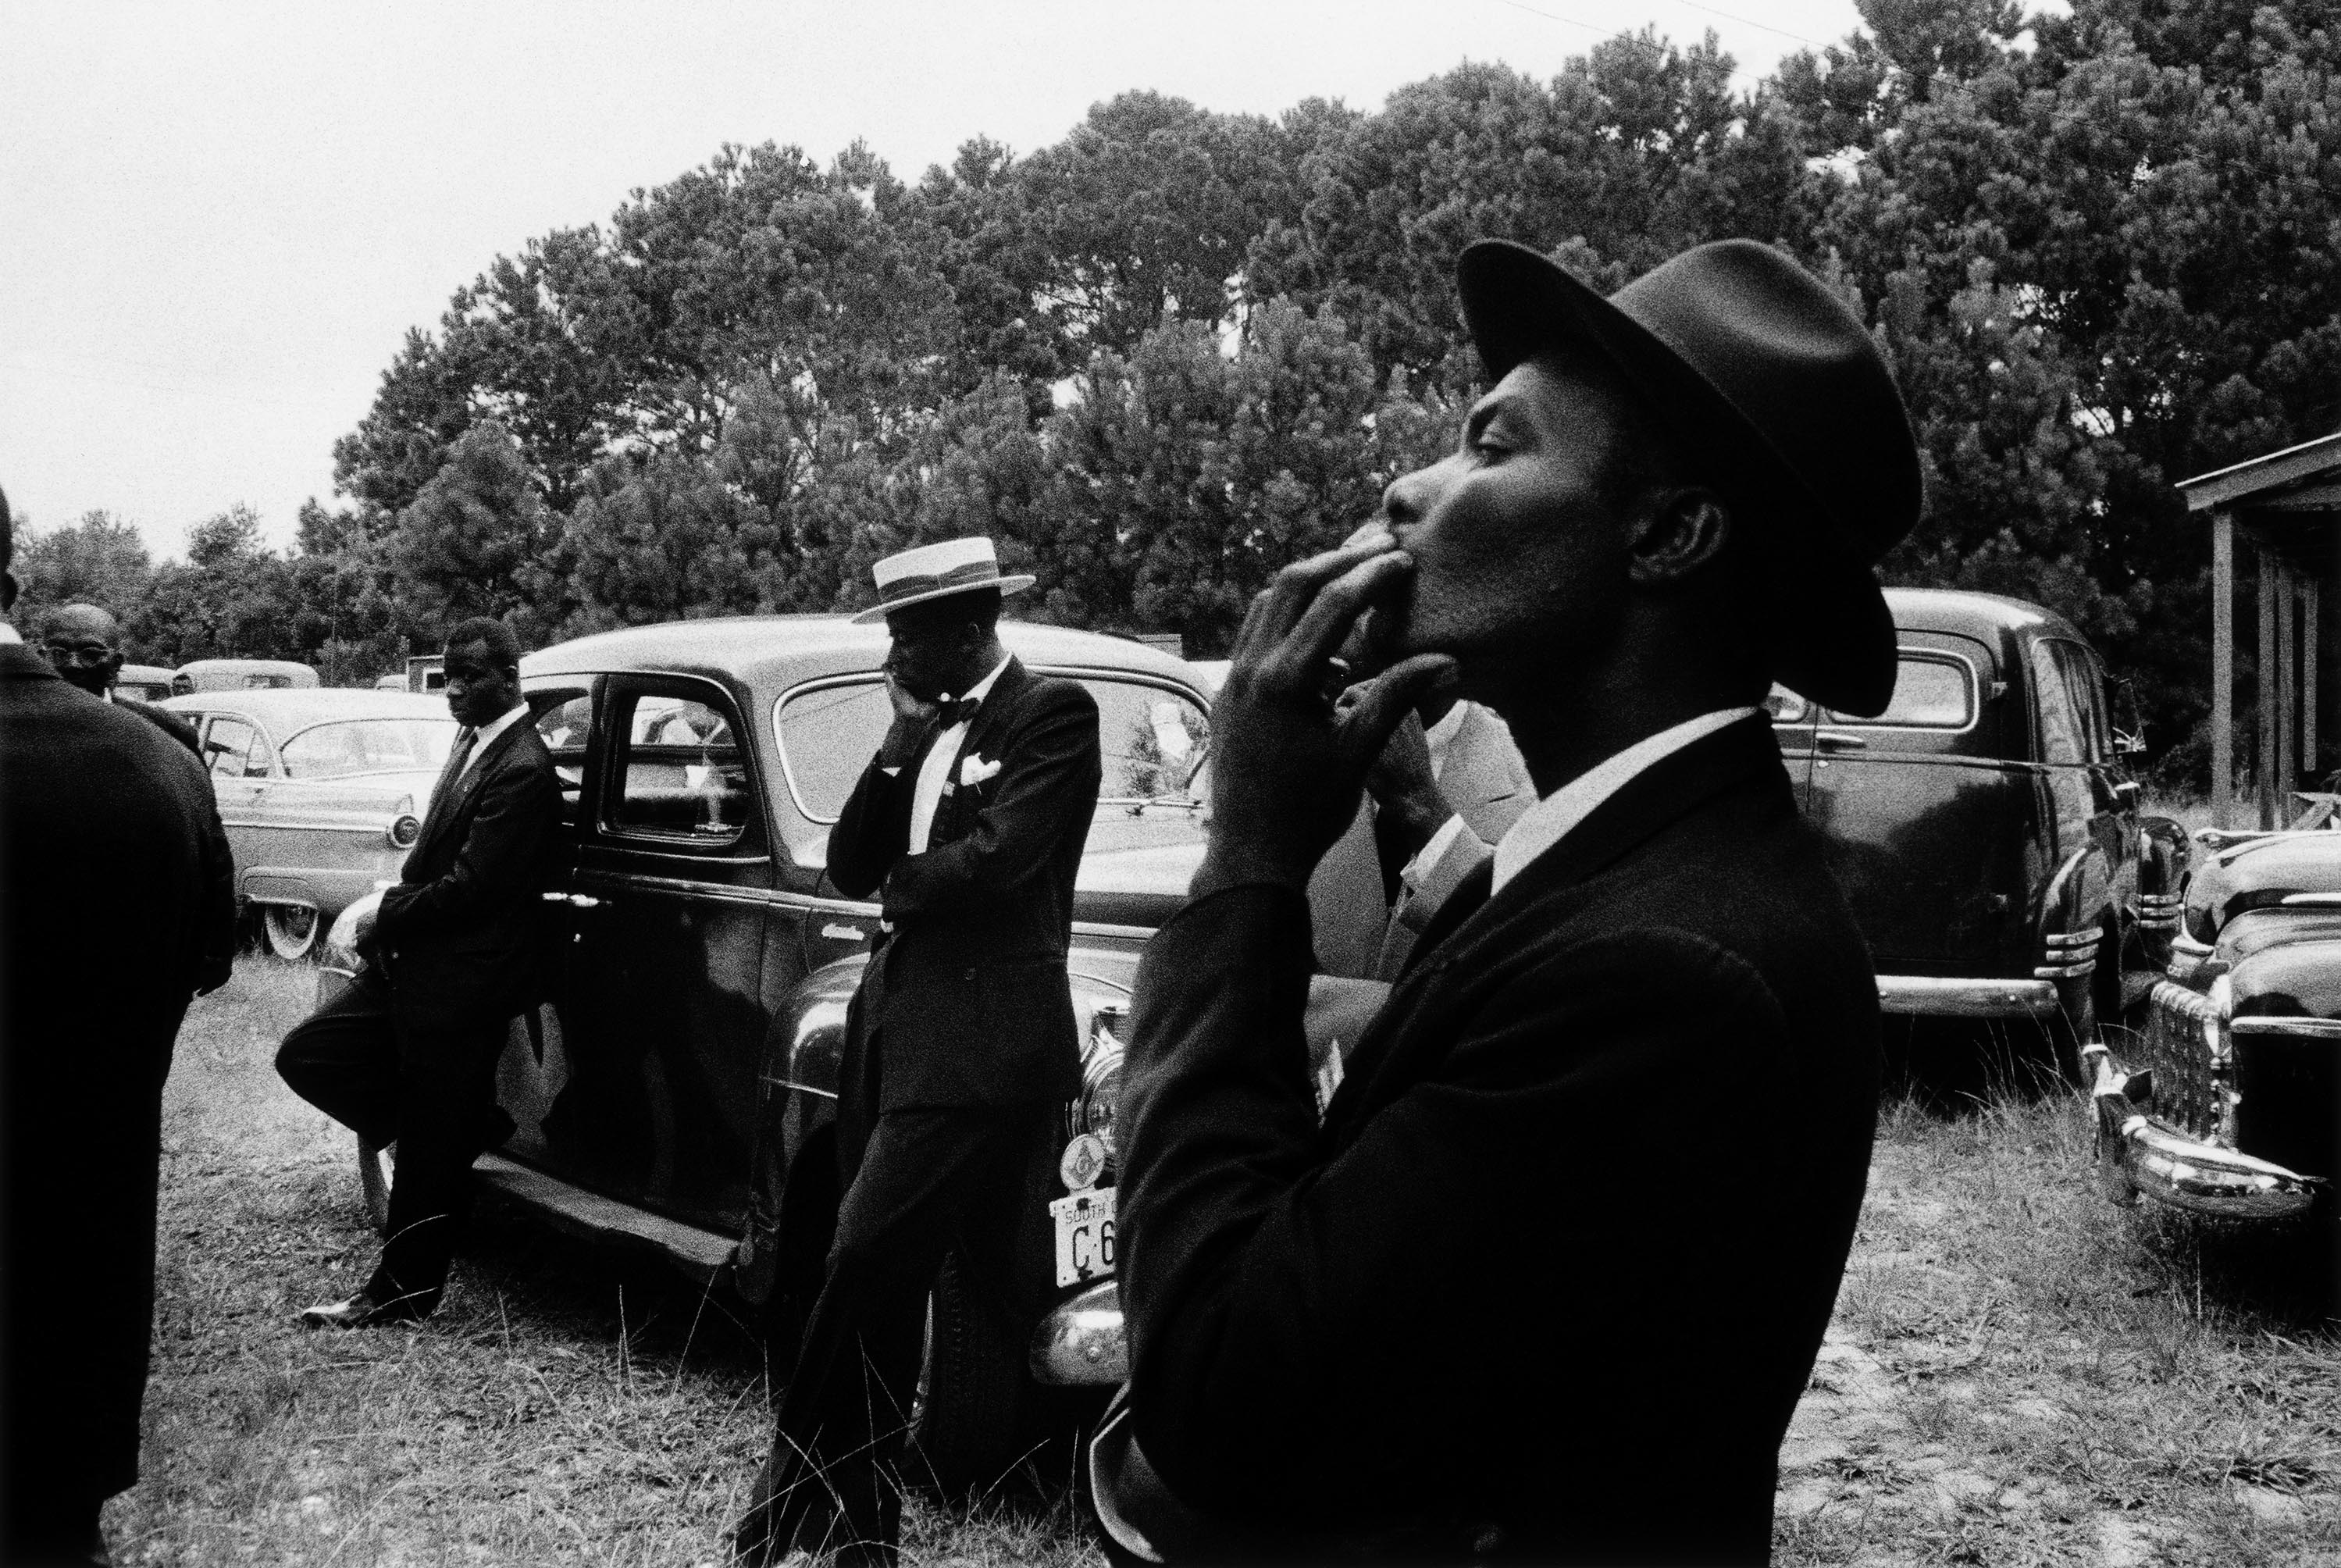 Robert Frank, Funeral - St. Helena, South Carolina , from the book The Americans © Robert Frank